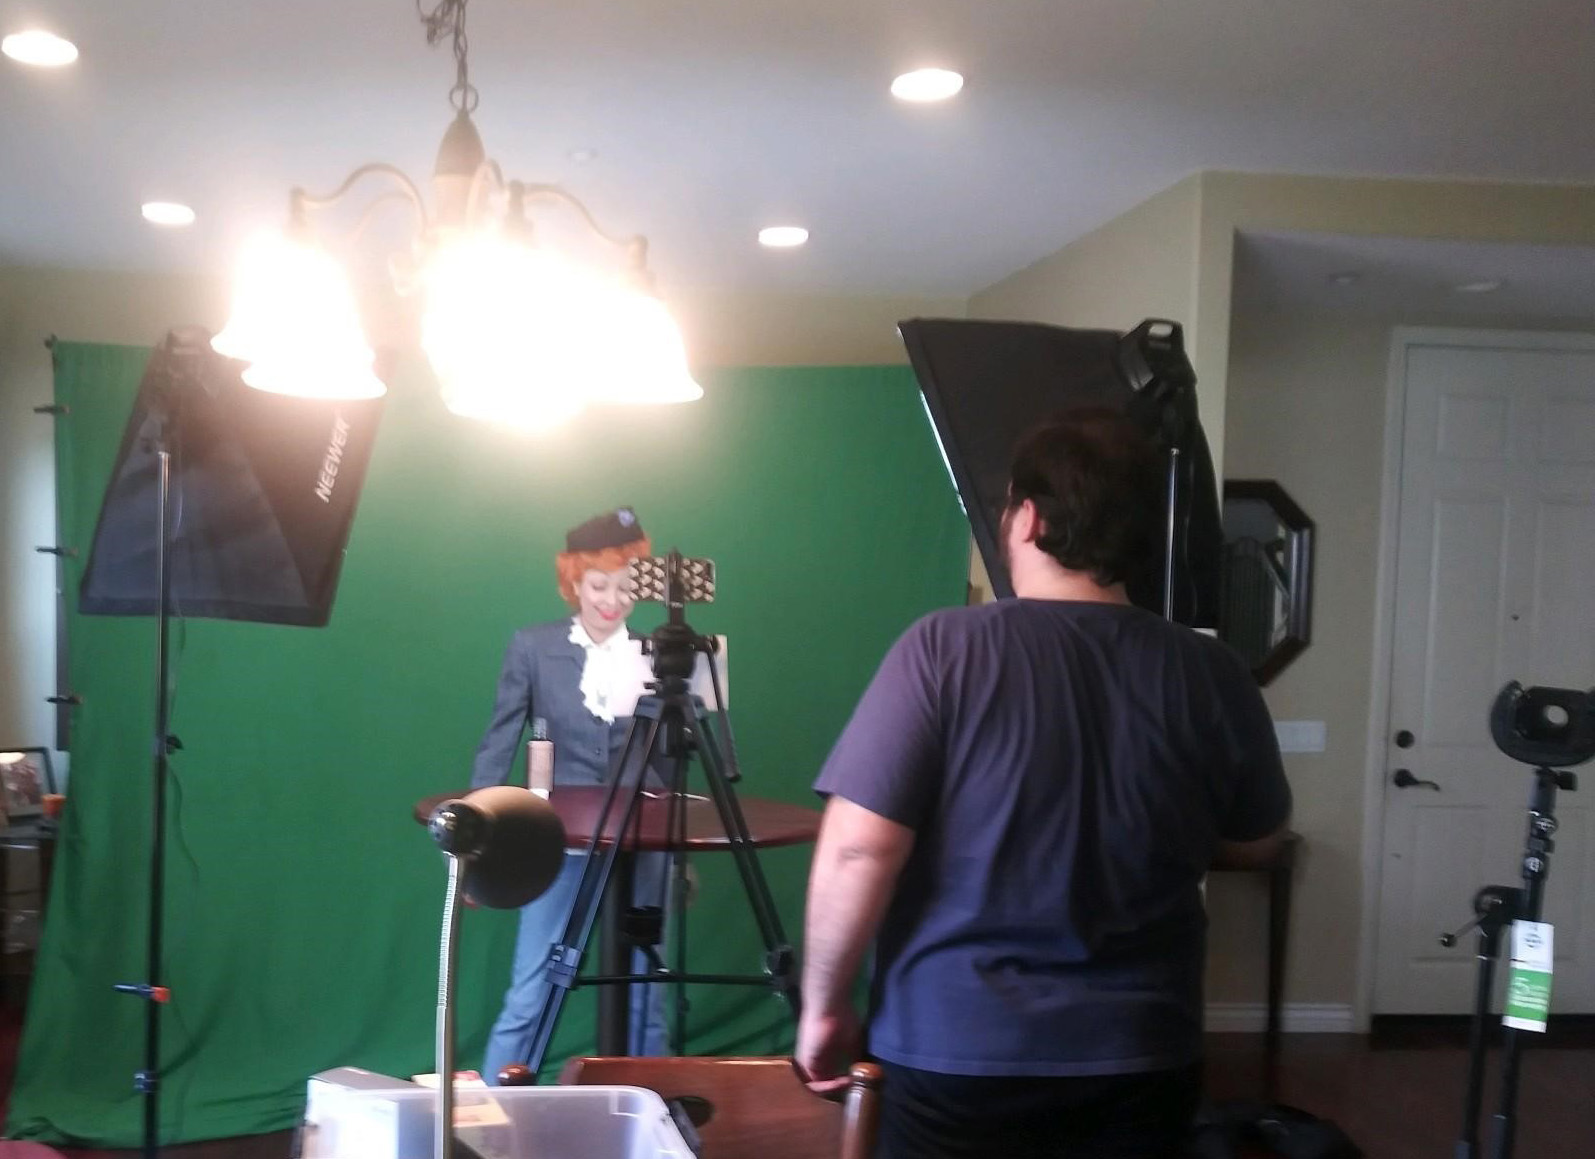 A student films her role as Lucille Ball at home.